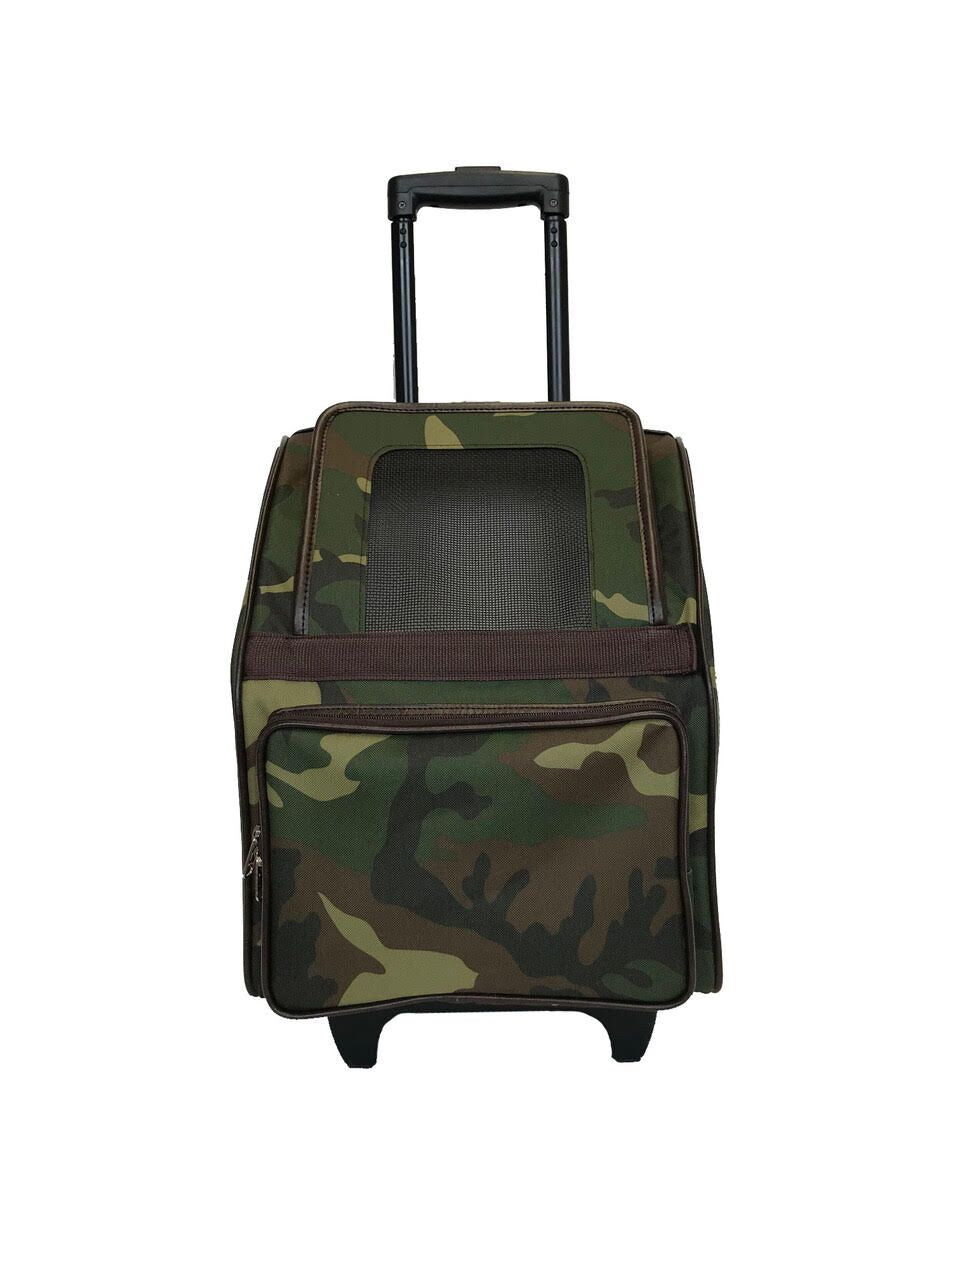 Rio Bag on Wheels - JT wagglepurr